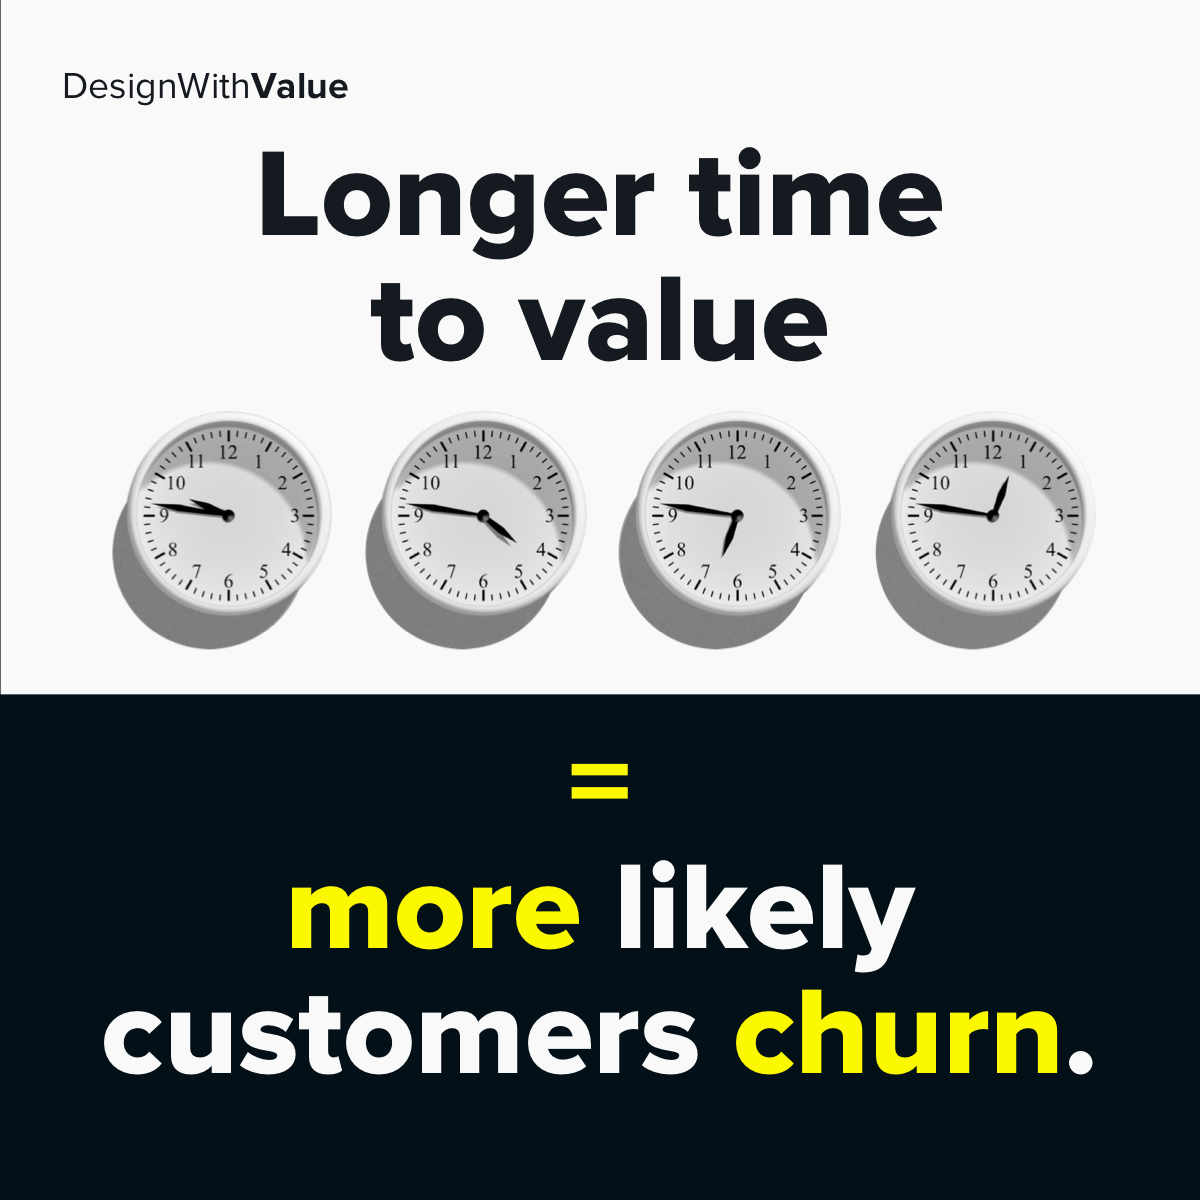 Longer time to value means more likely customers churn.